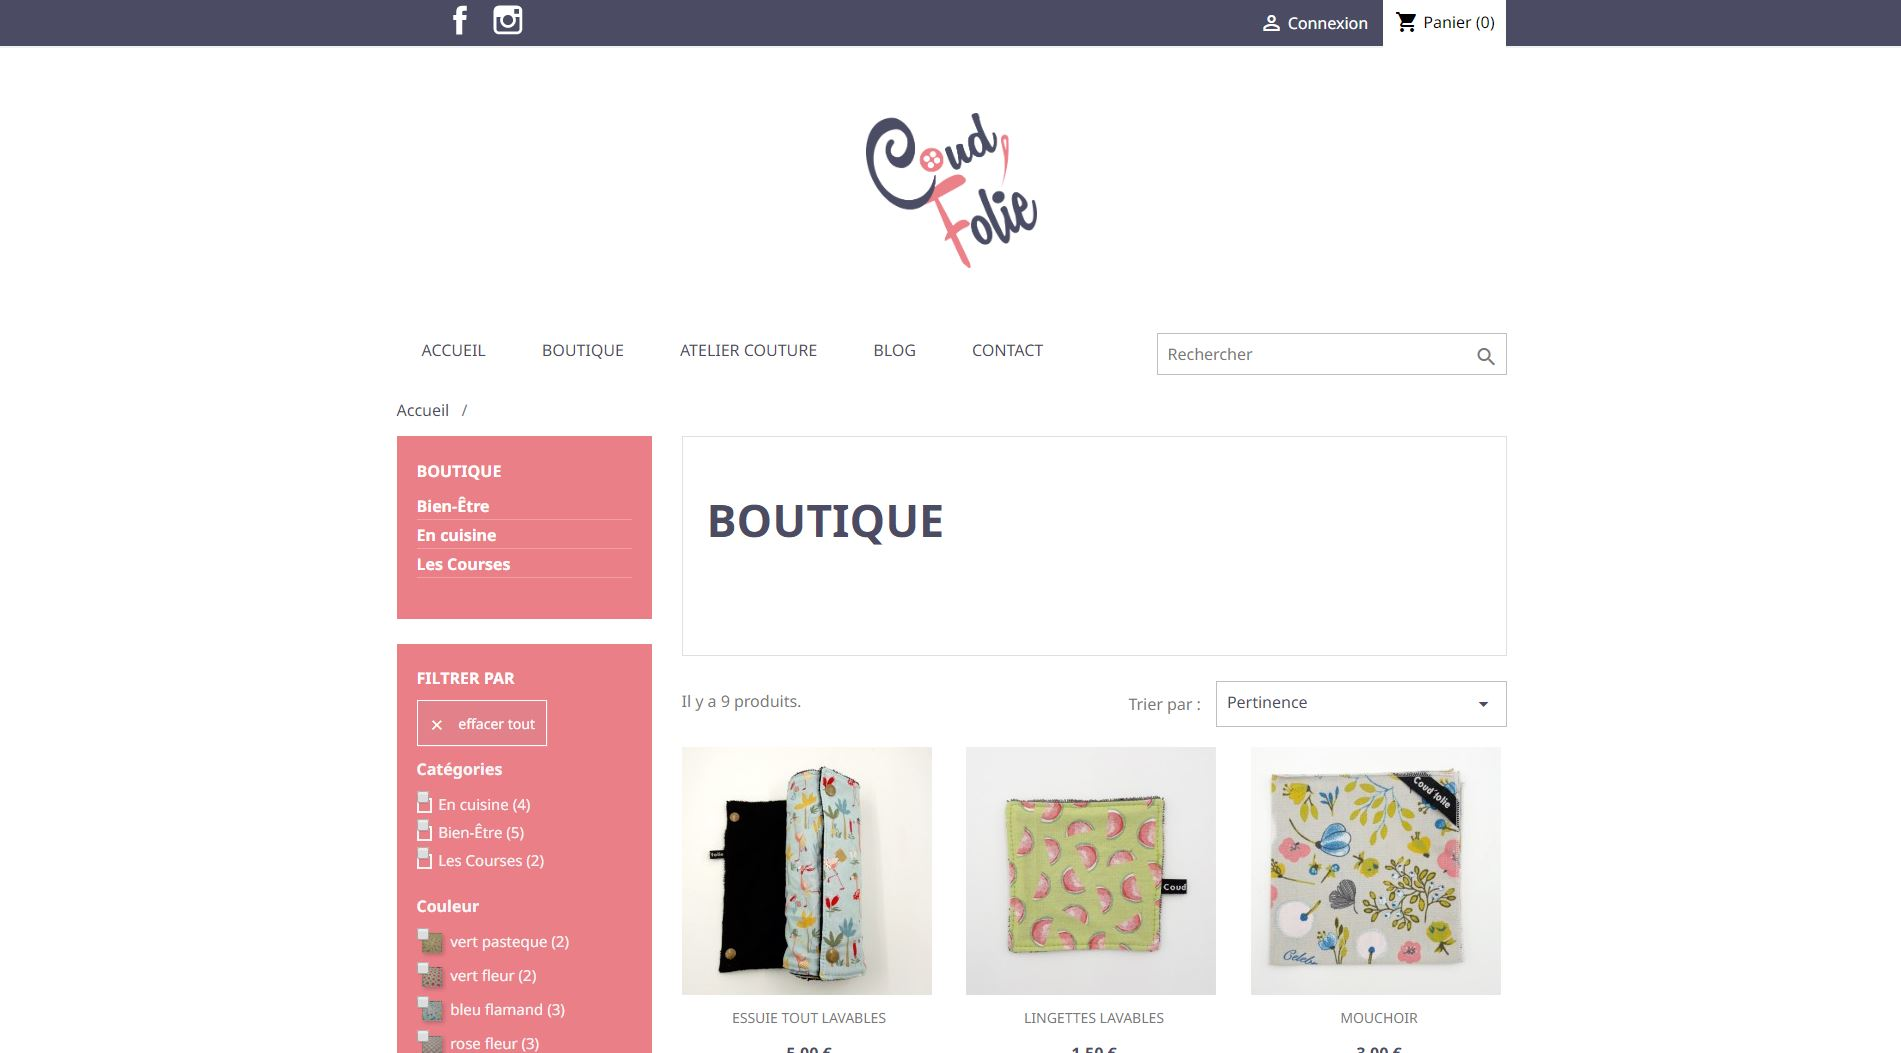 Coud'Folie - Boutique